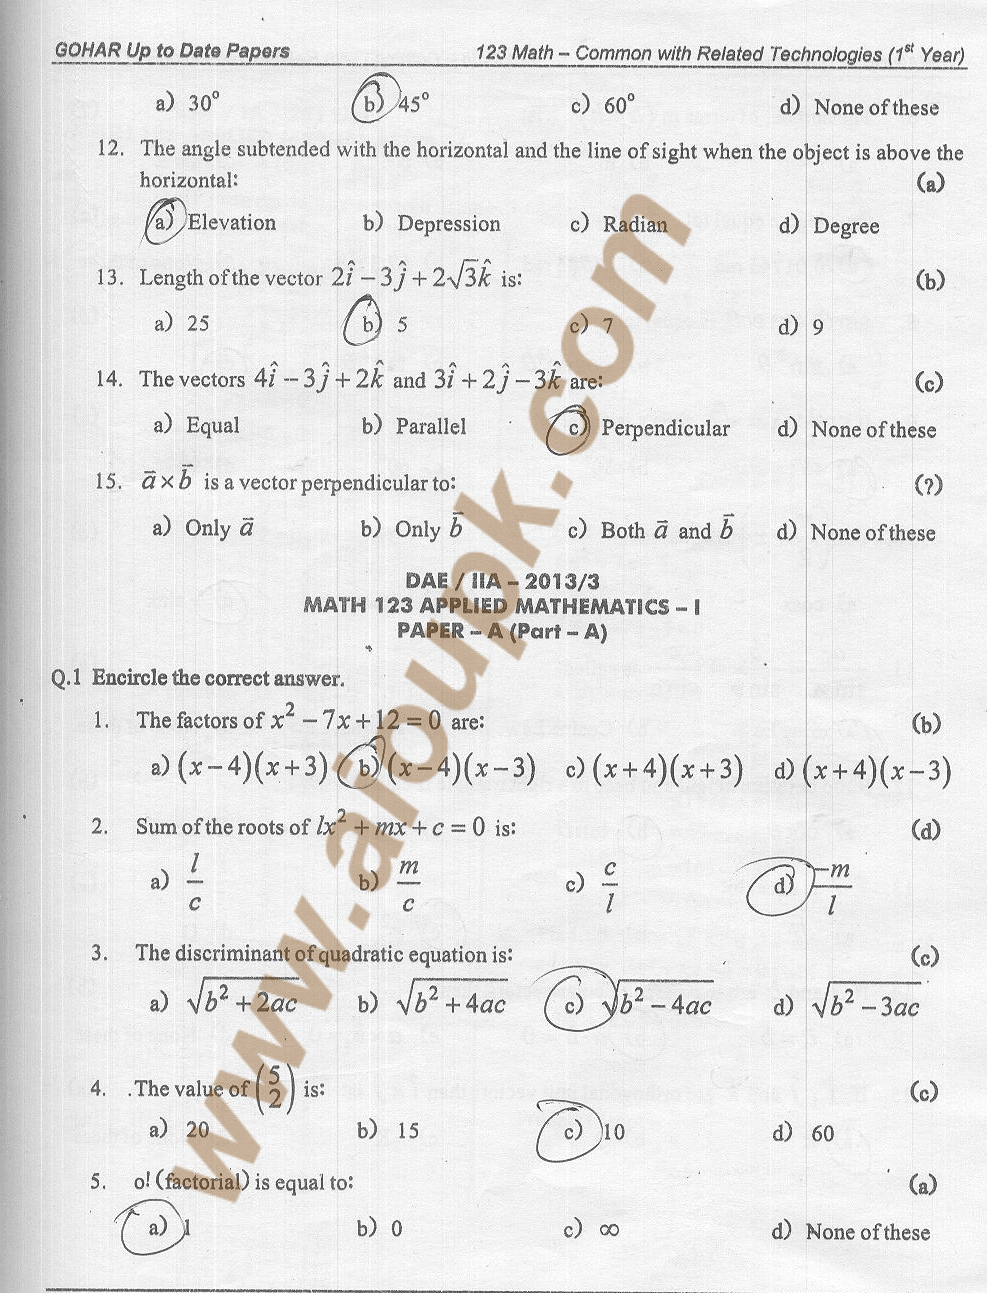 intermediate 1 maths past paper questions Students can check 11th class mathematics past papers on this page.